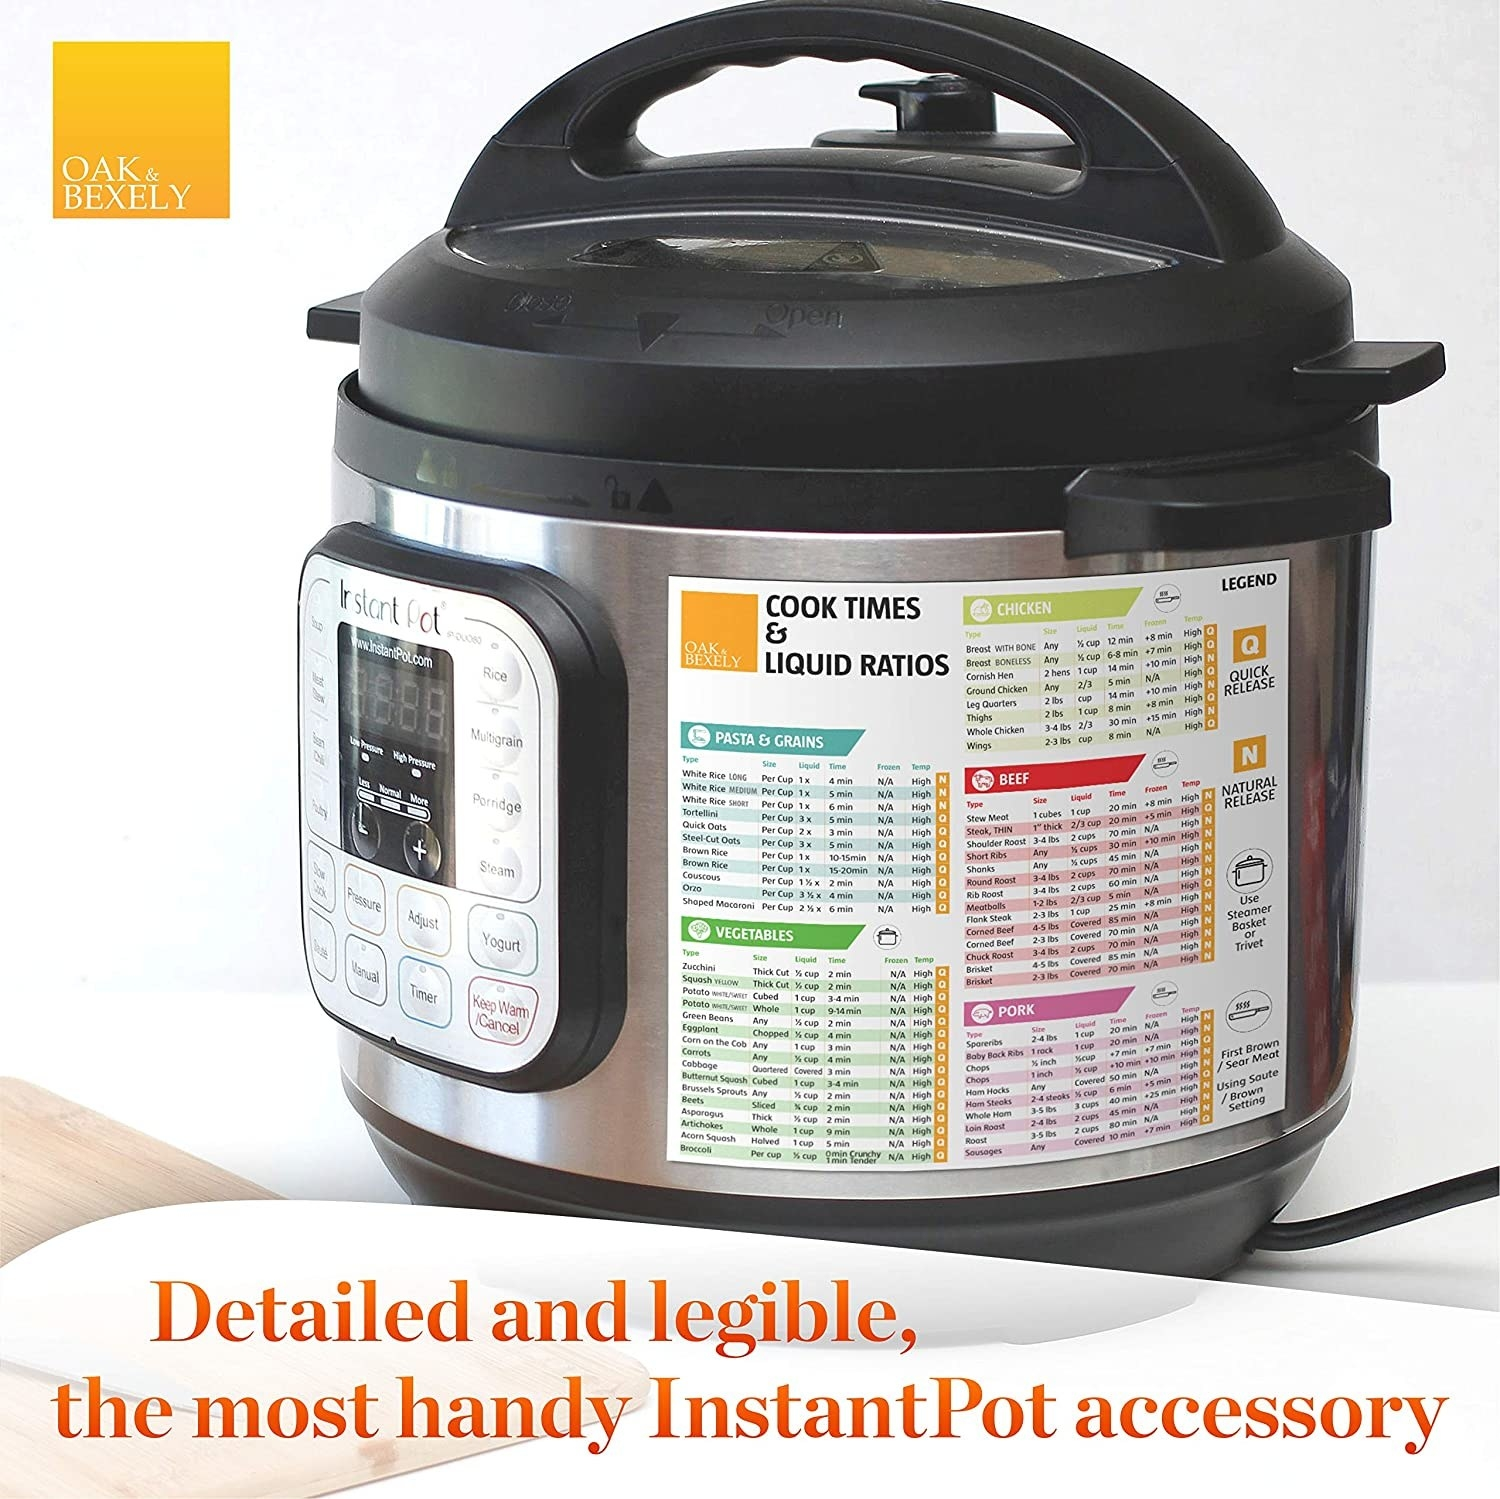 Instant Pot with magnet on it